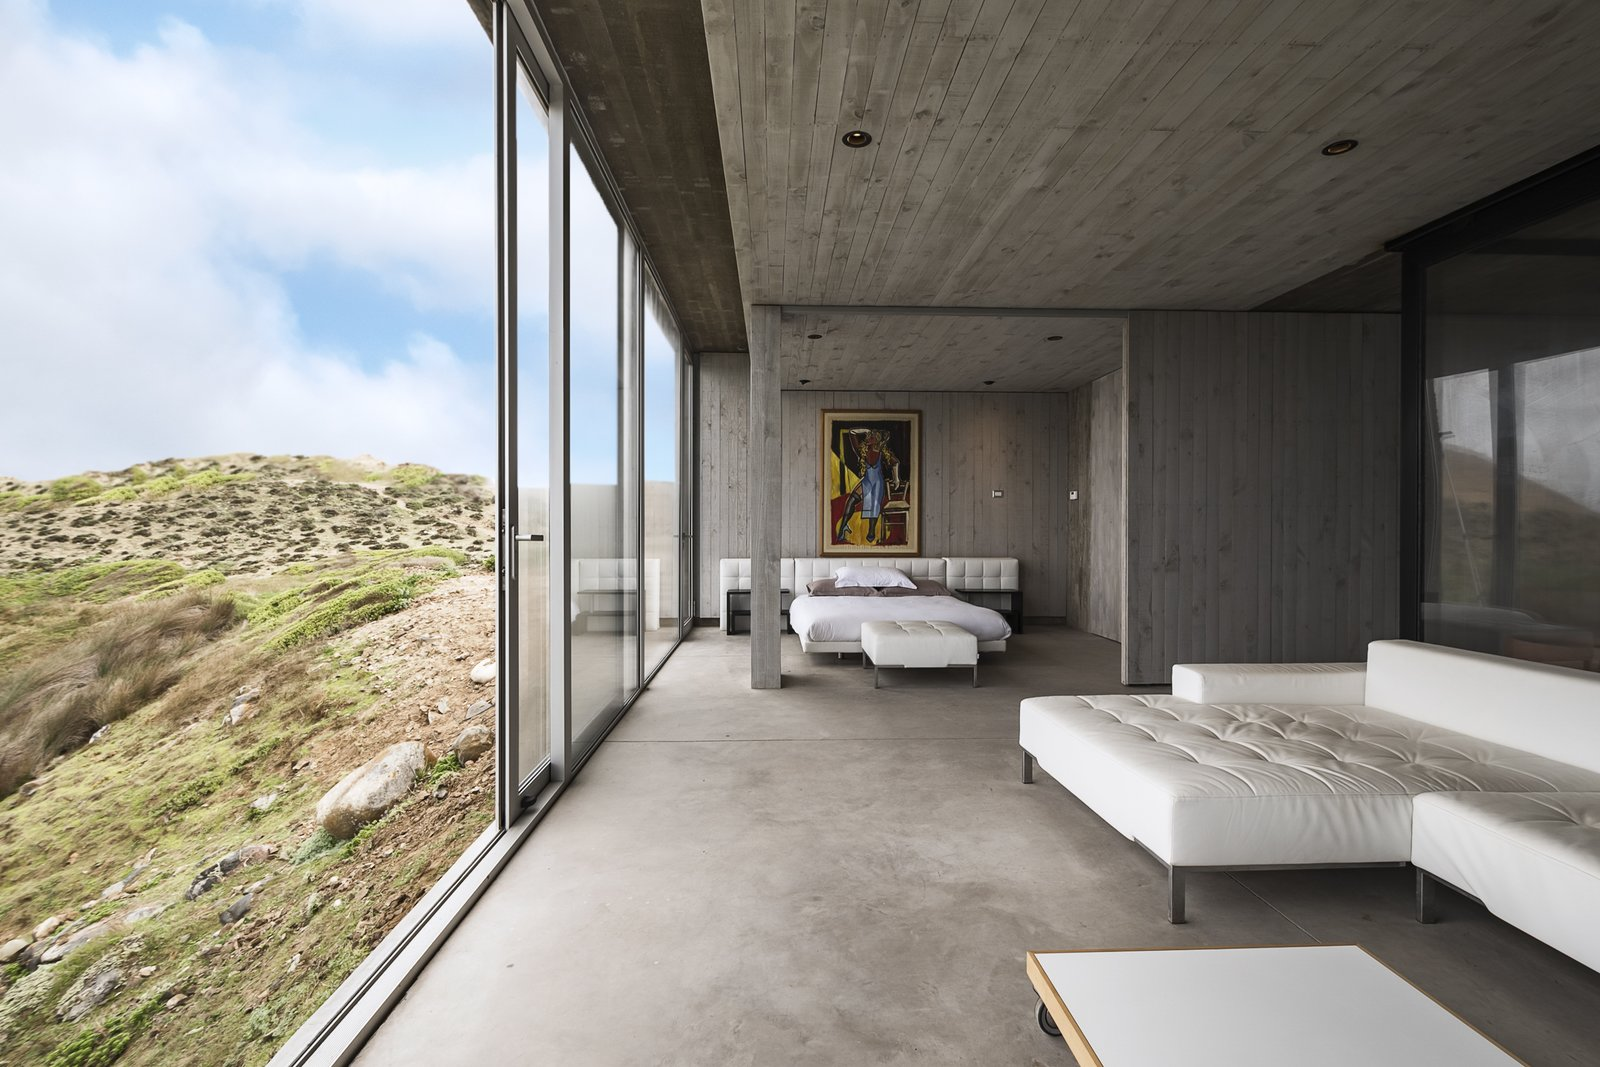 A Concrete Home by Pritzker Prize-Winner Alejandro Aravena Hits the Market For $1.5M